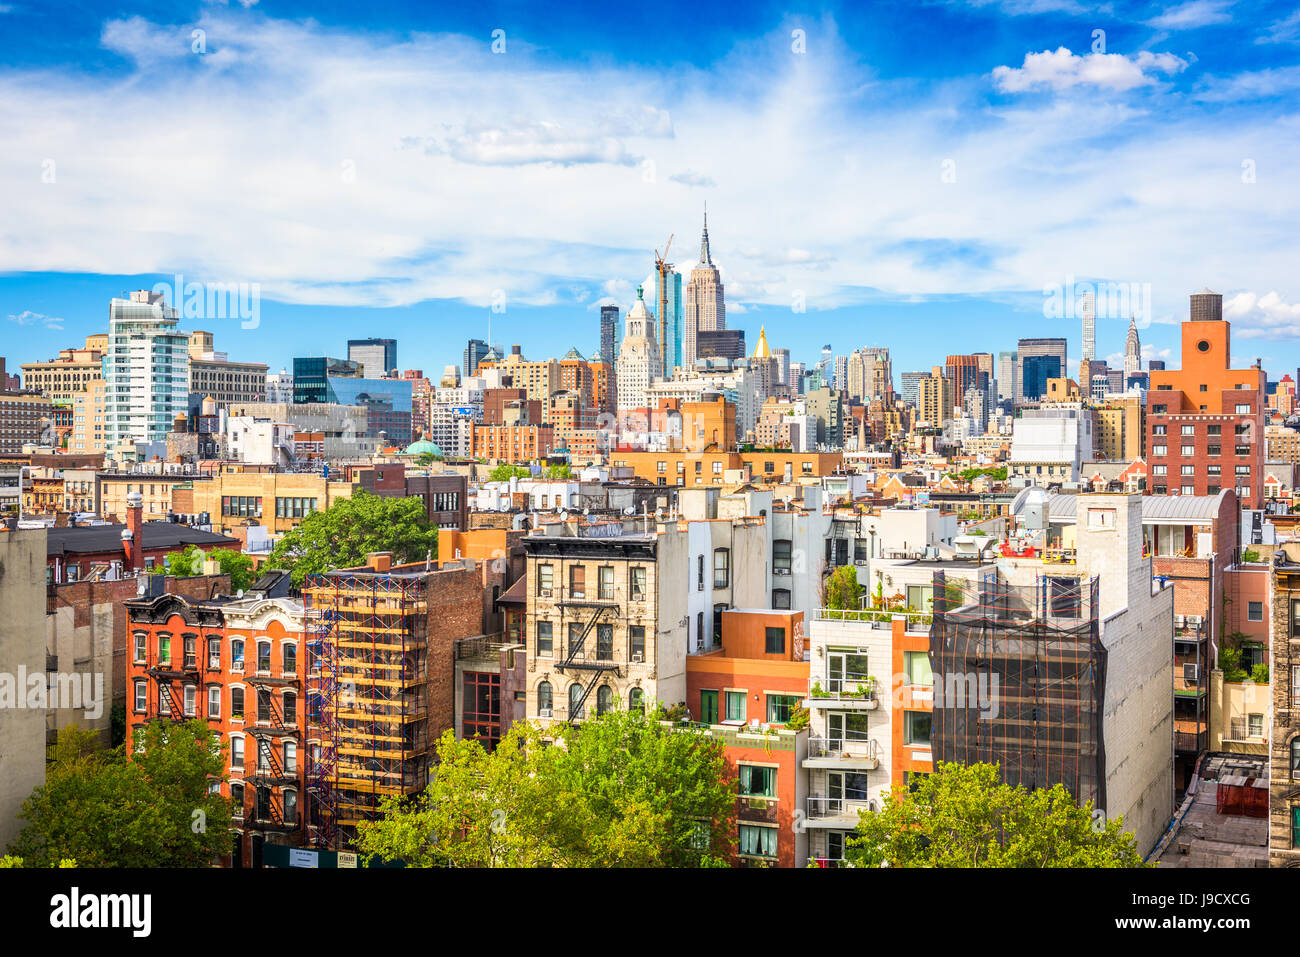 Vue sur la ville de New York Lower East Side à Manhattan. Photo Stock